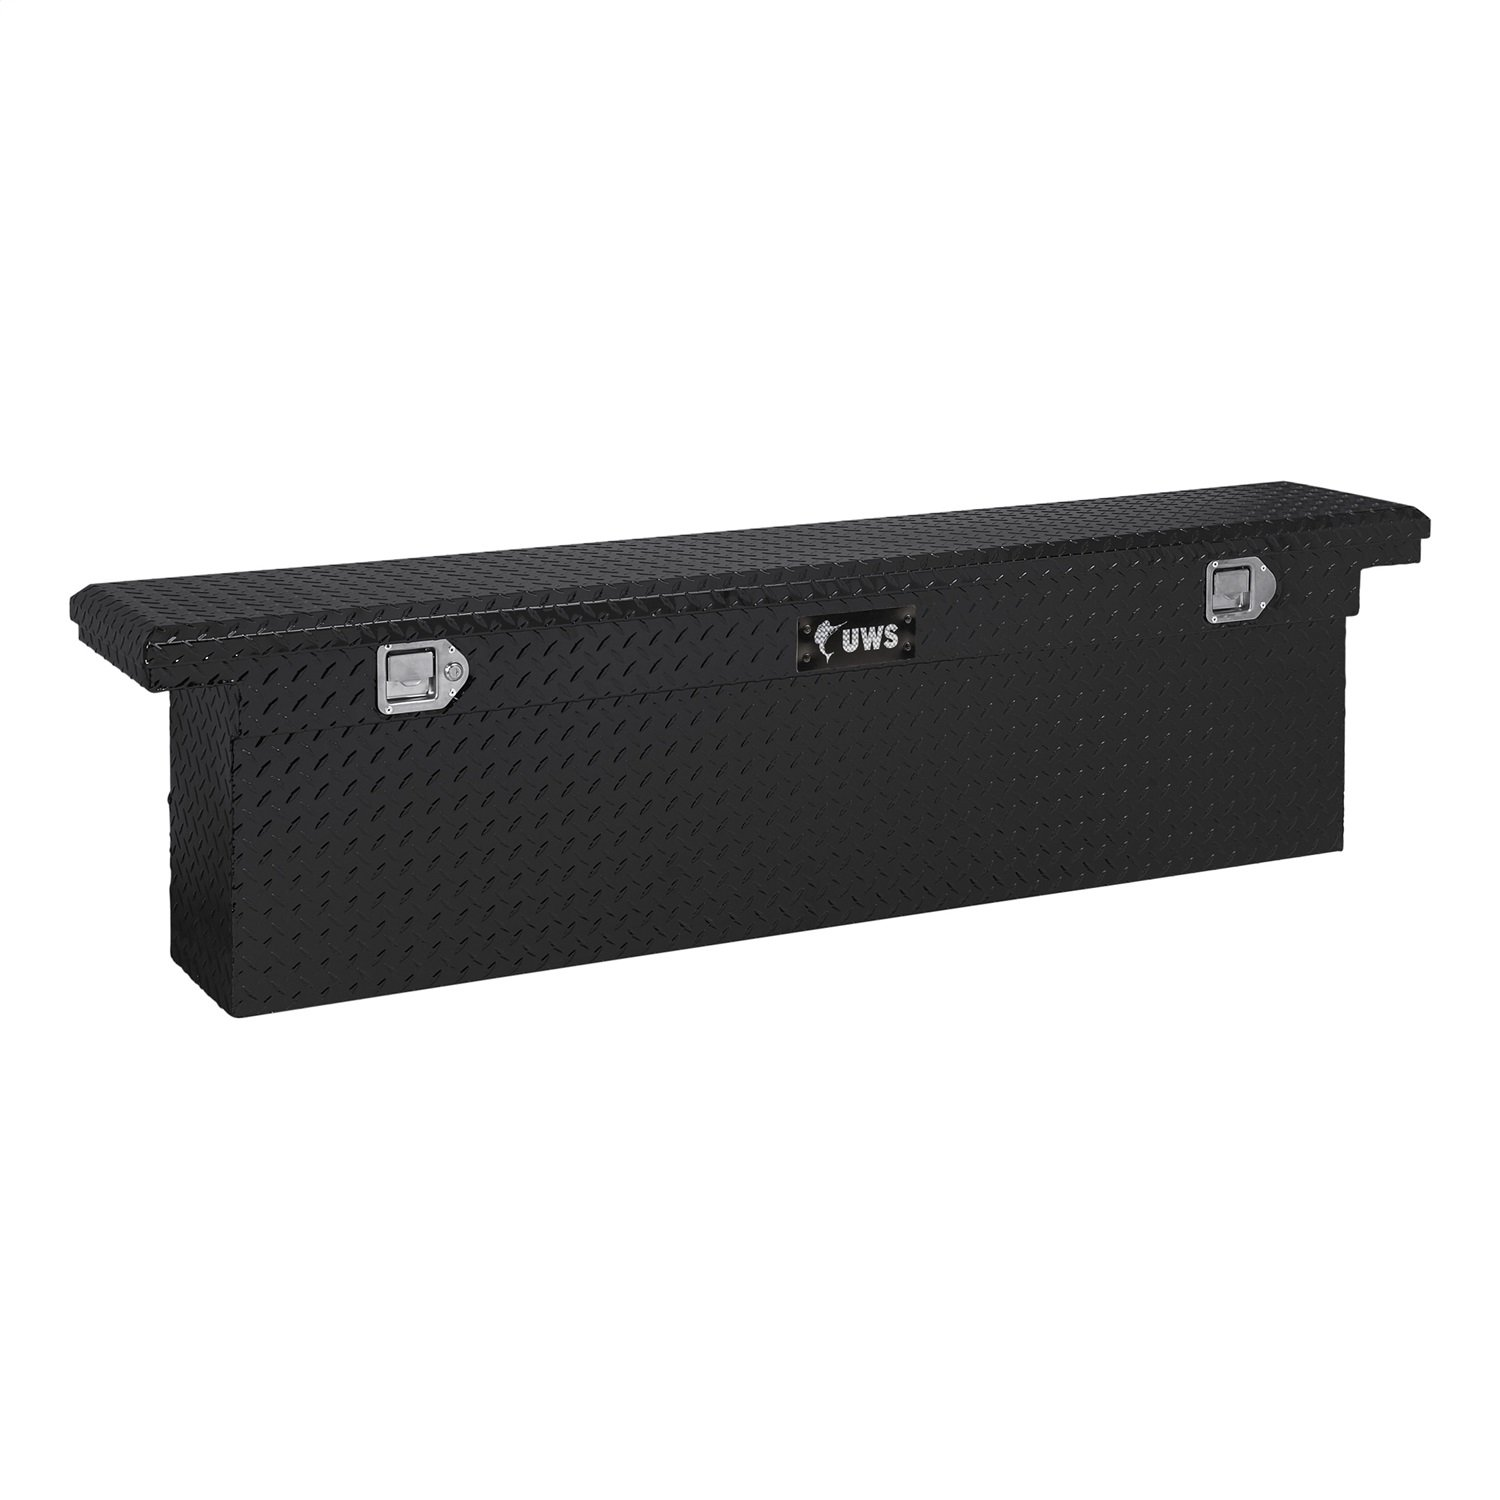 UWS TBSD-72-SL-LP-BLK Black 72 Single Lid Slim Line Deep Low Profile Crossover Tool Box with Beveled Insulated Lid